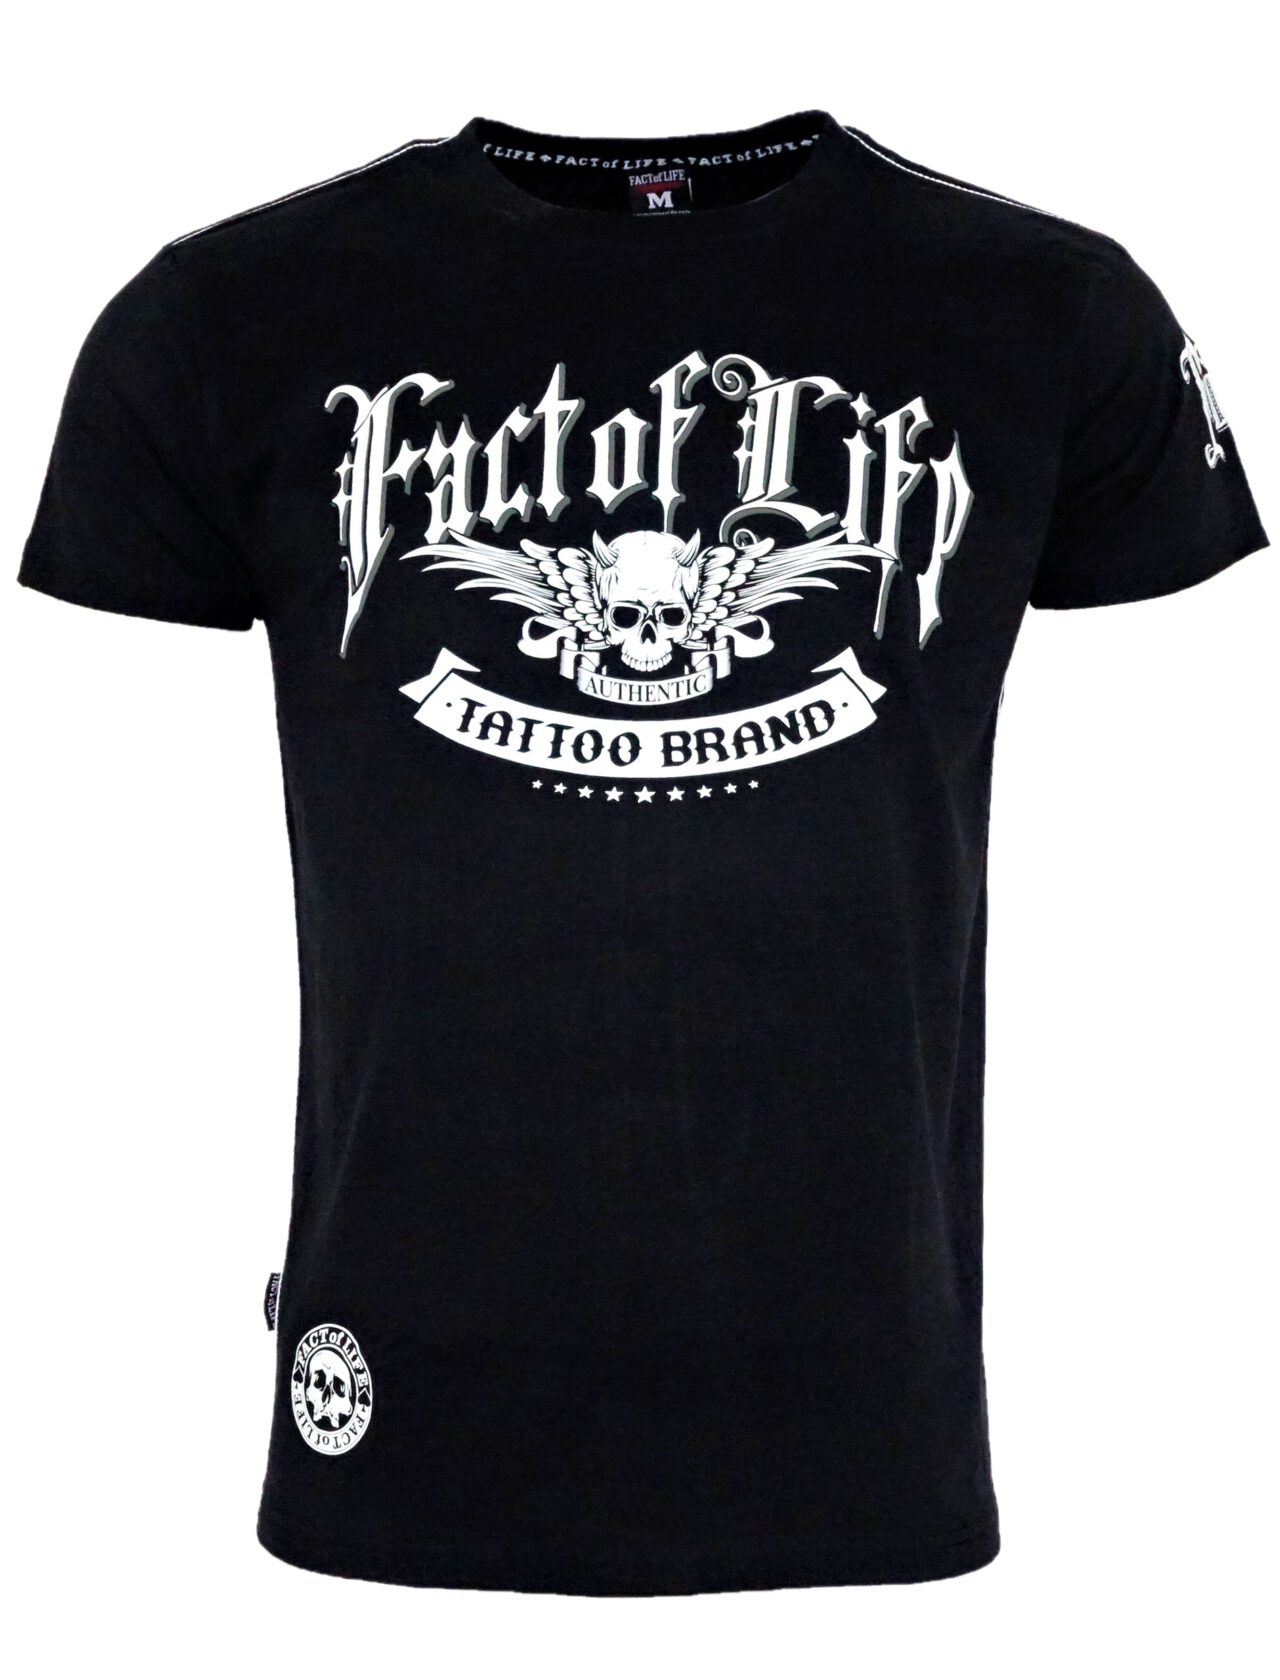 Fact of Life T-Shirt Voodoo TS-33 black